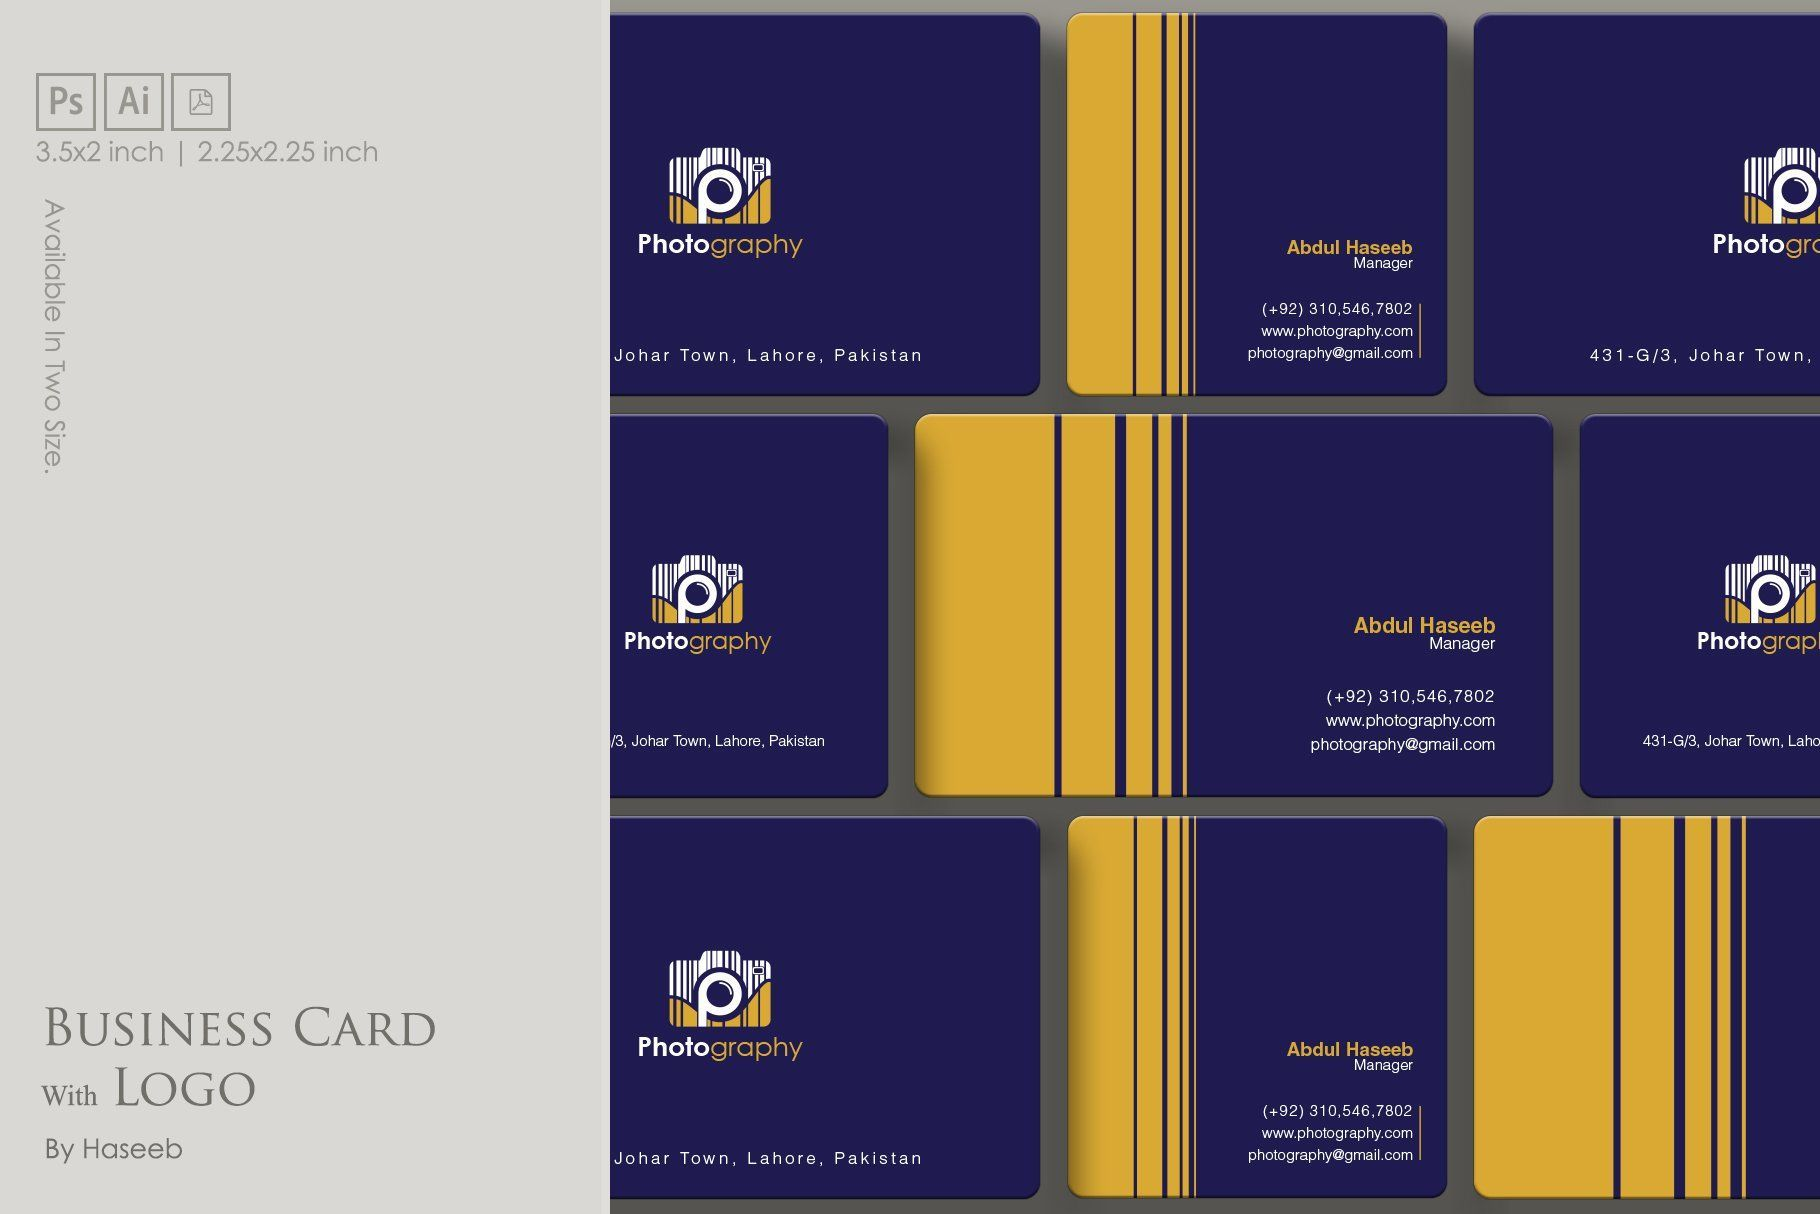 Business Card With Logo Business Card Template Business Card Logo Business Cards